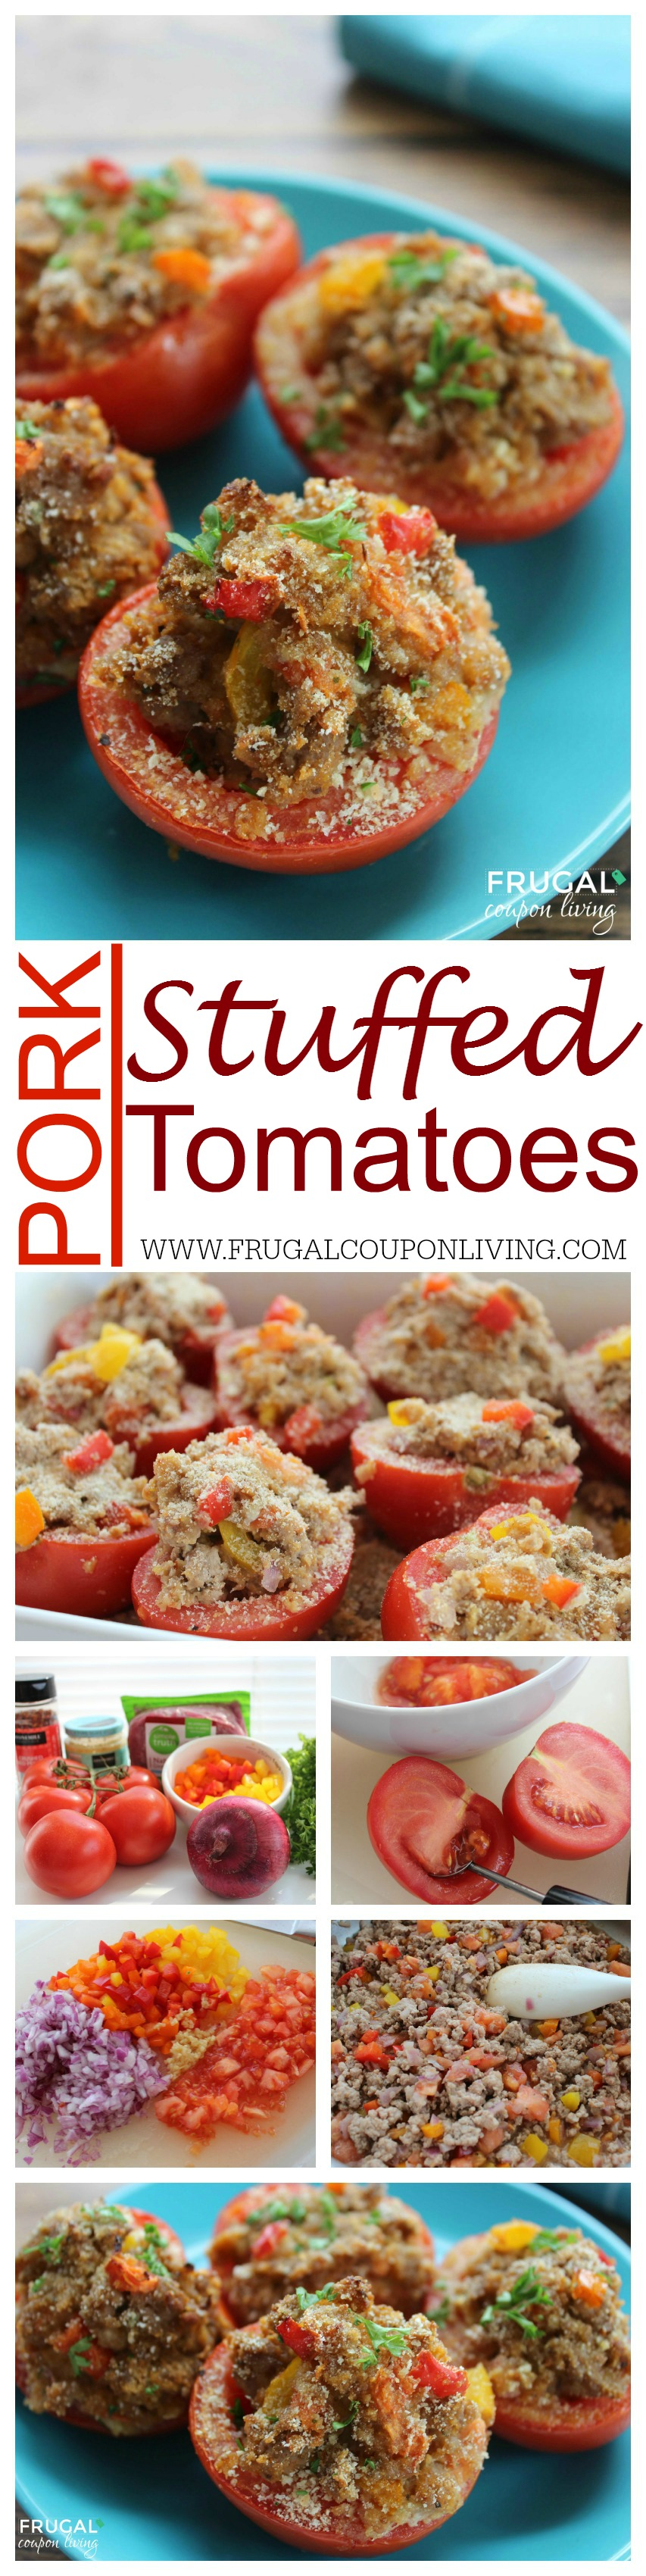 lean-stuffed-tomatoes-Collage-frugal-coupon-living